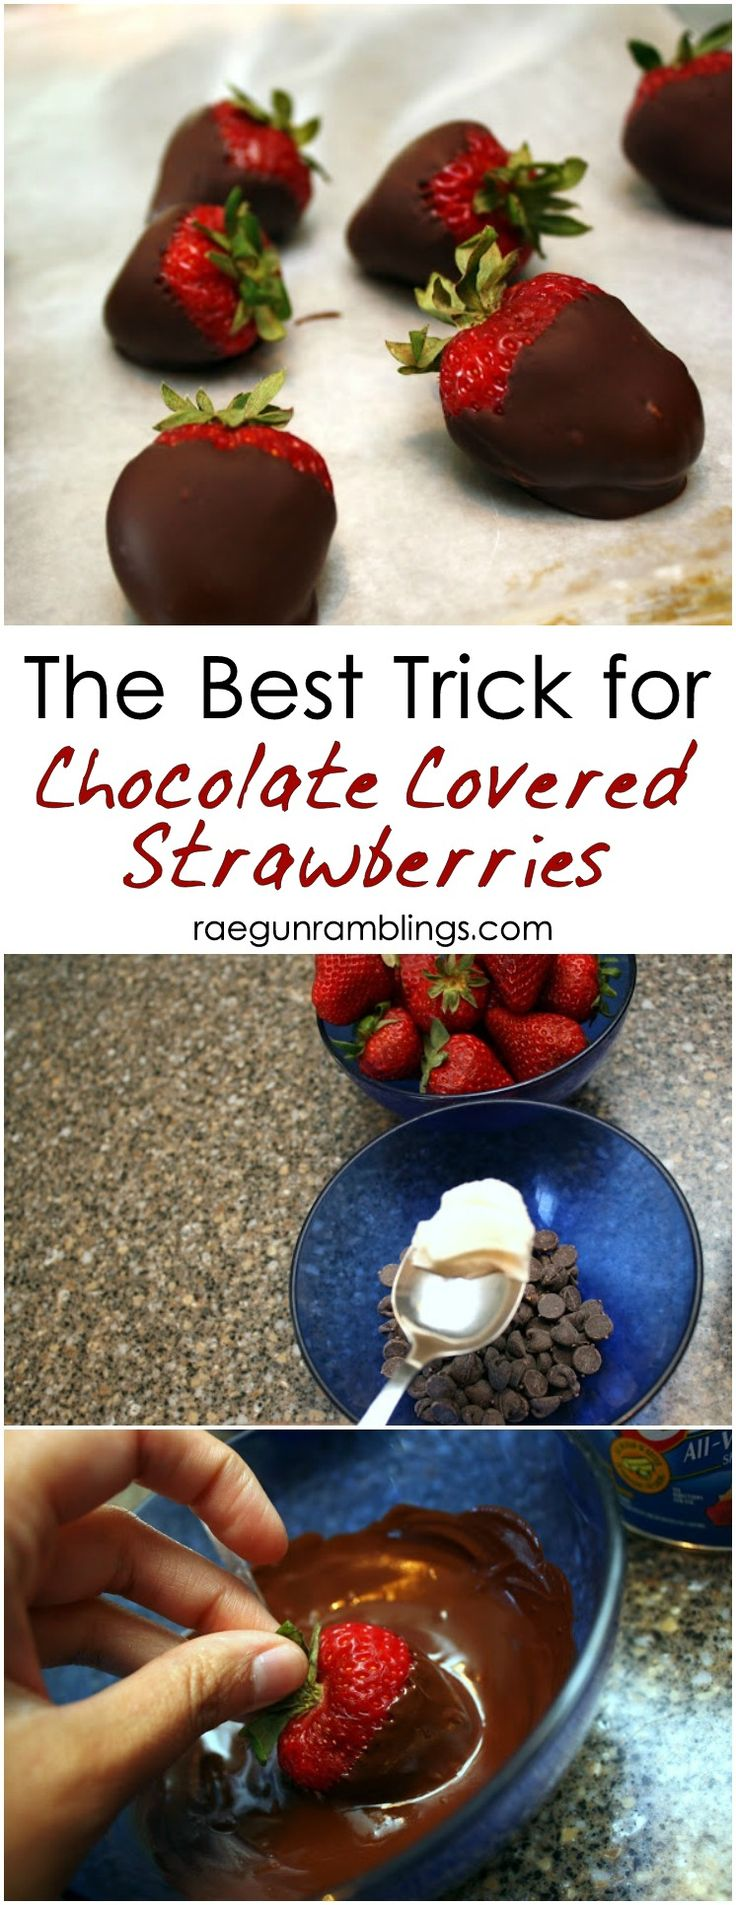 Hands down the best trick to making perfect chocolate covered strawberries - add a tsp of crisco to the chocolate chips